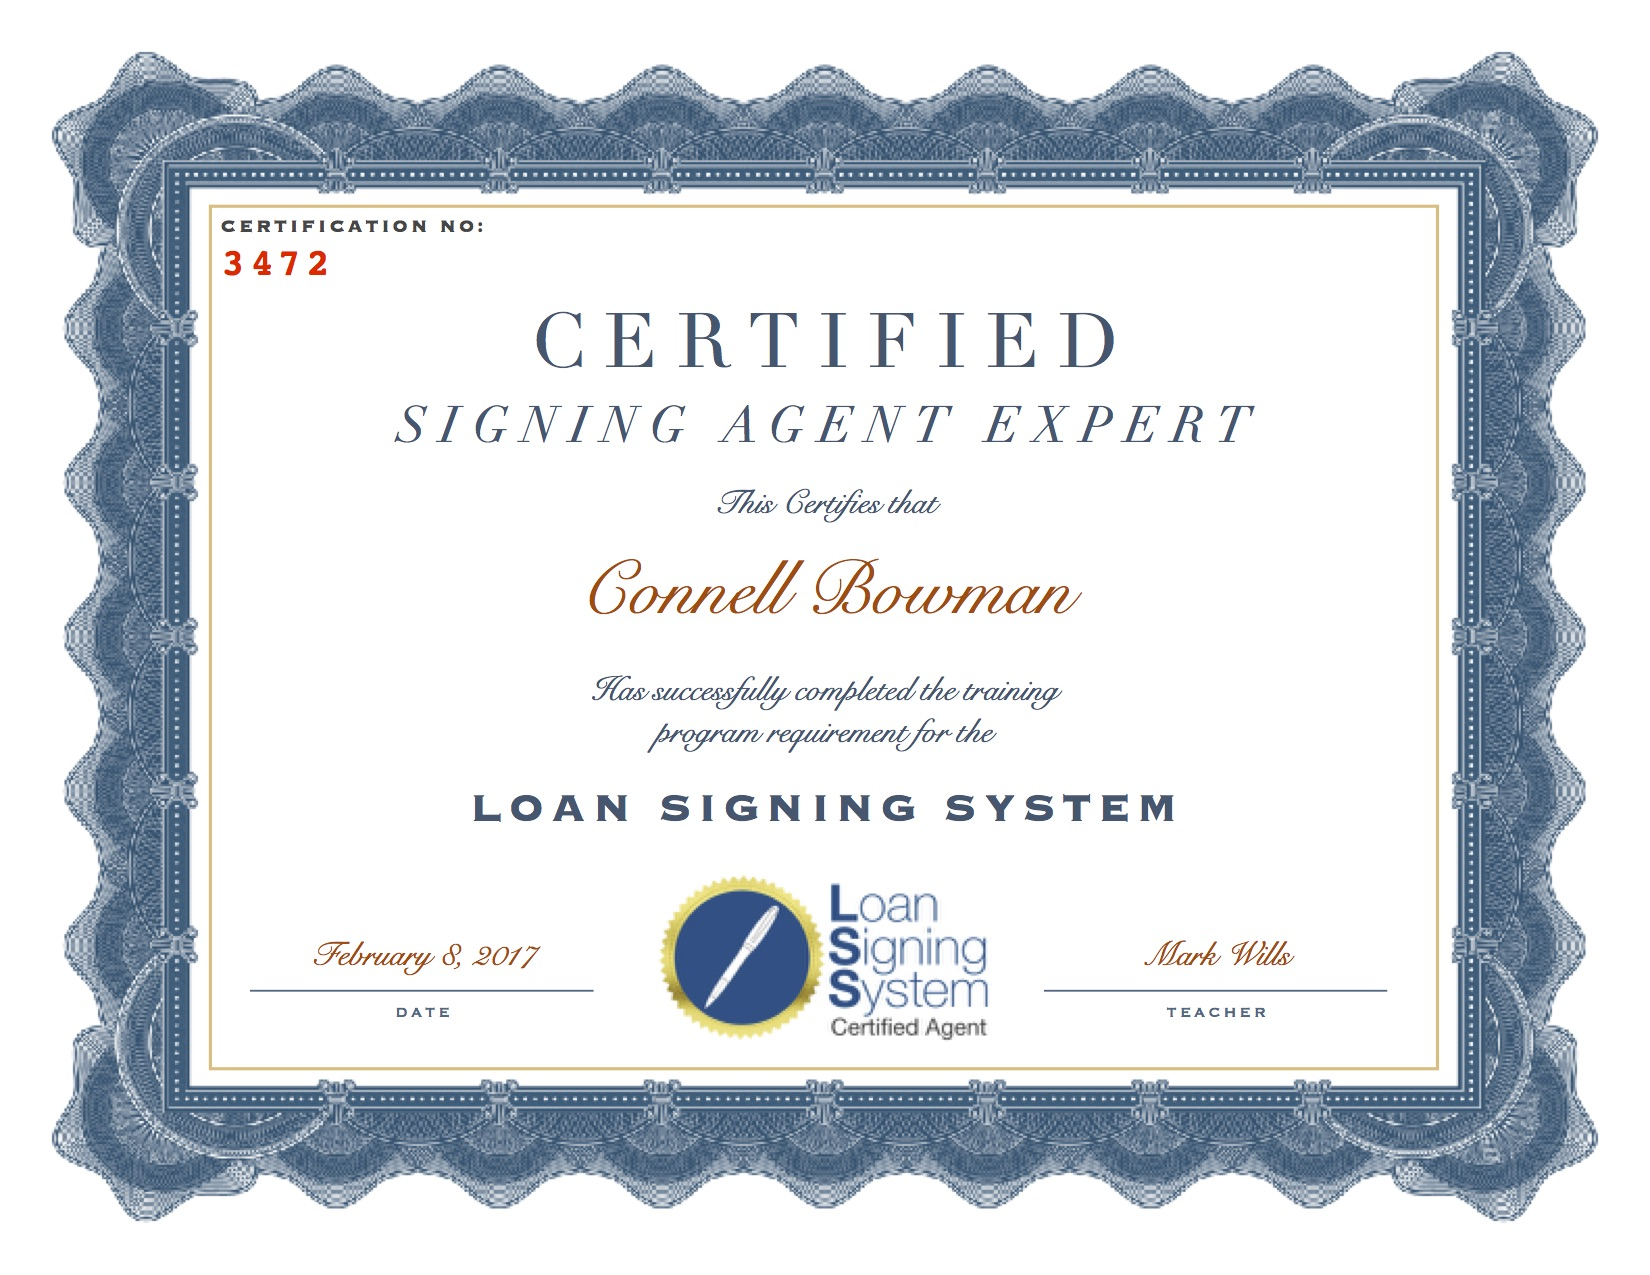 Loan Signing System Notary Signing Agent Training Course